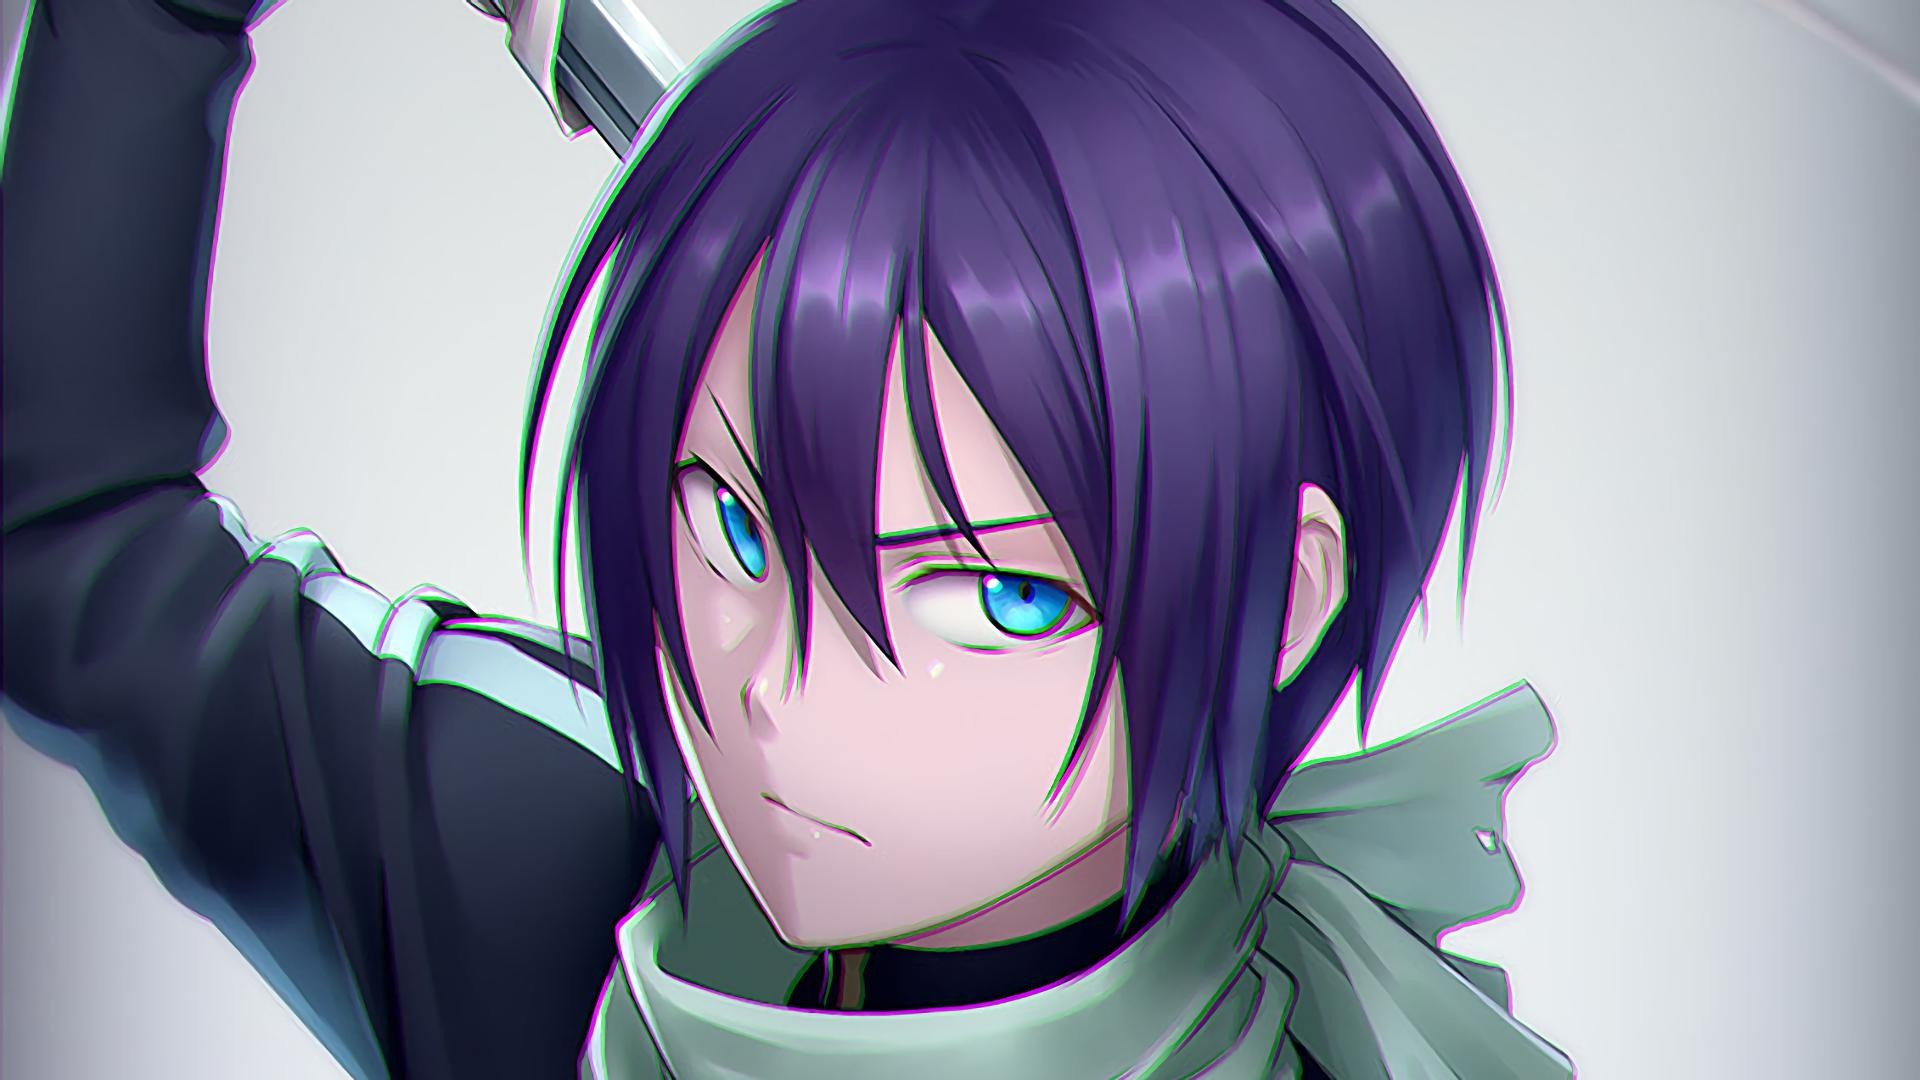 82 Yato (Noragami) HD Wallpapers   Backgrounds – Wallpaper Abyss